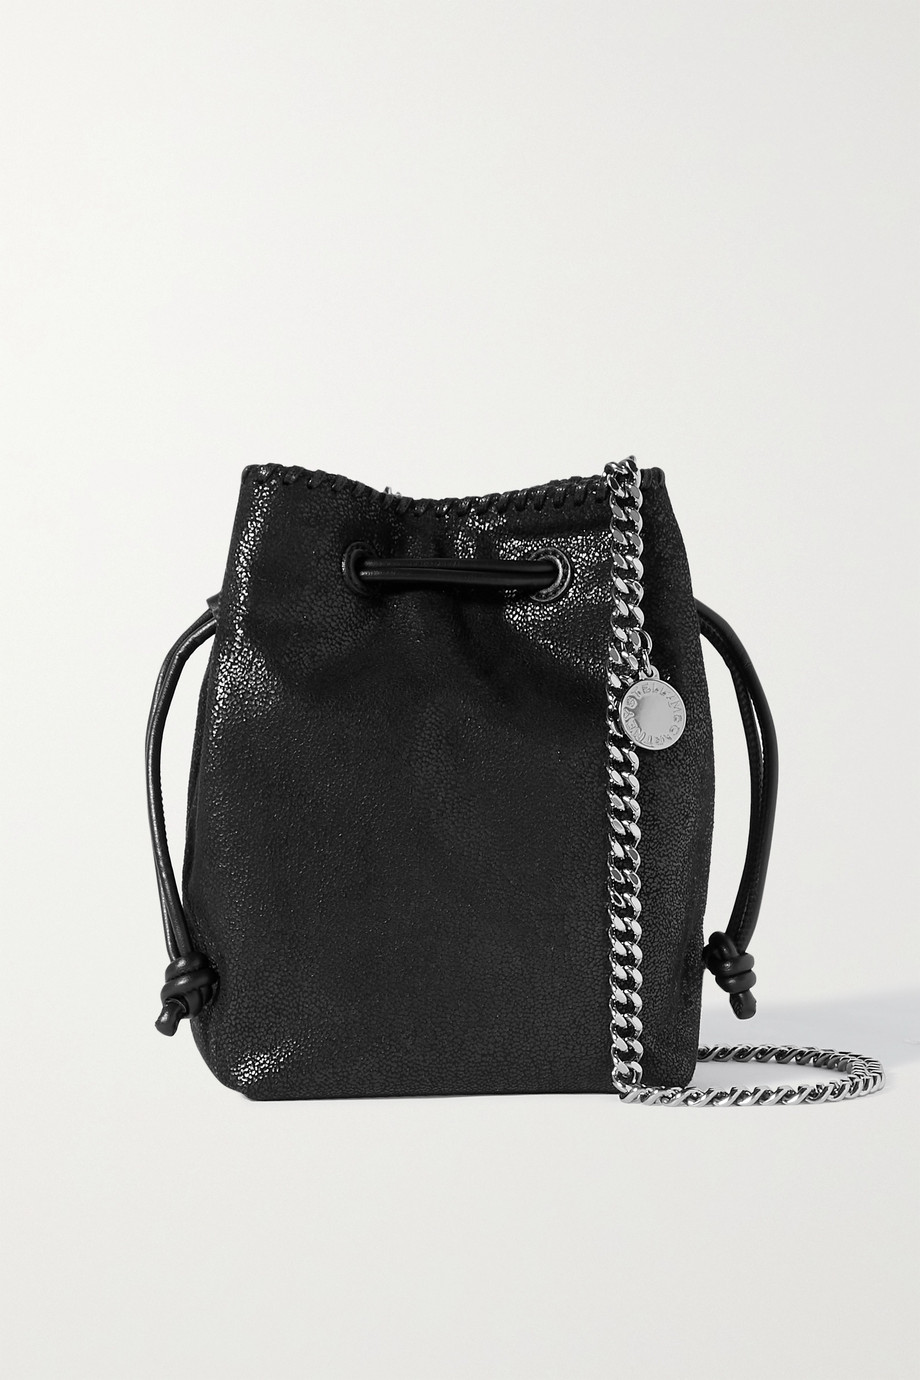 STELLA MCCARTNEY The Falabella micro vegetarian brushed-leather bucket bag